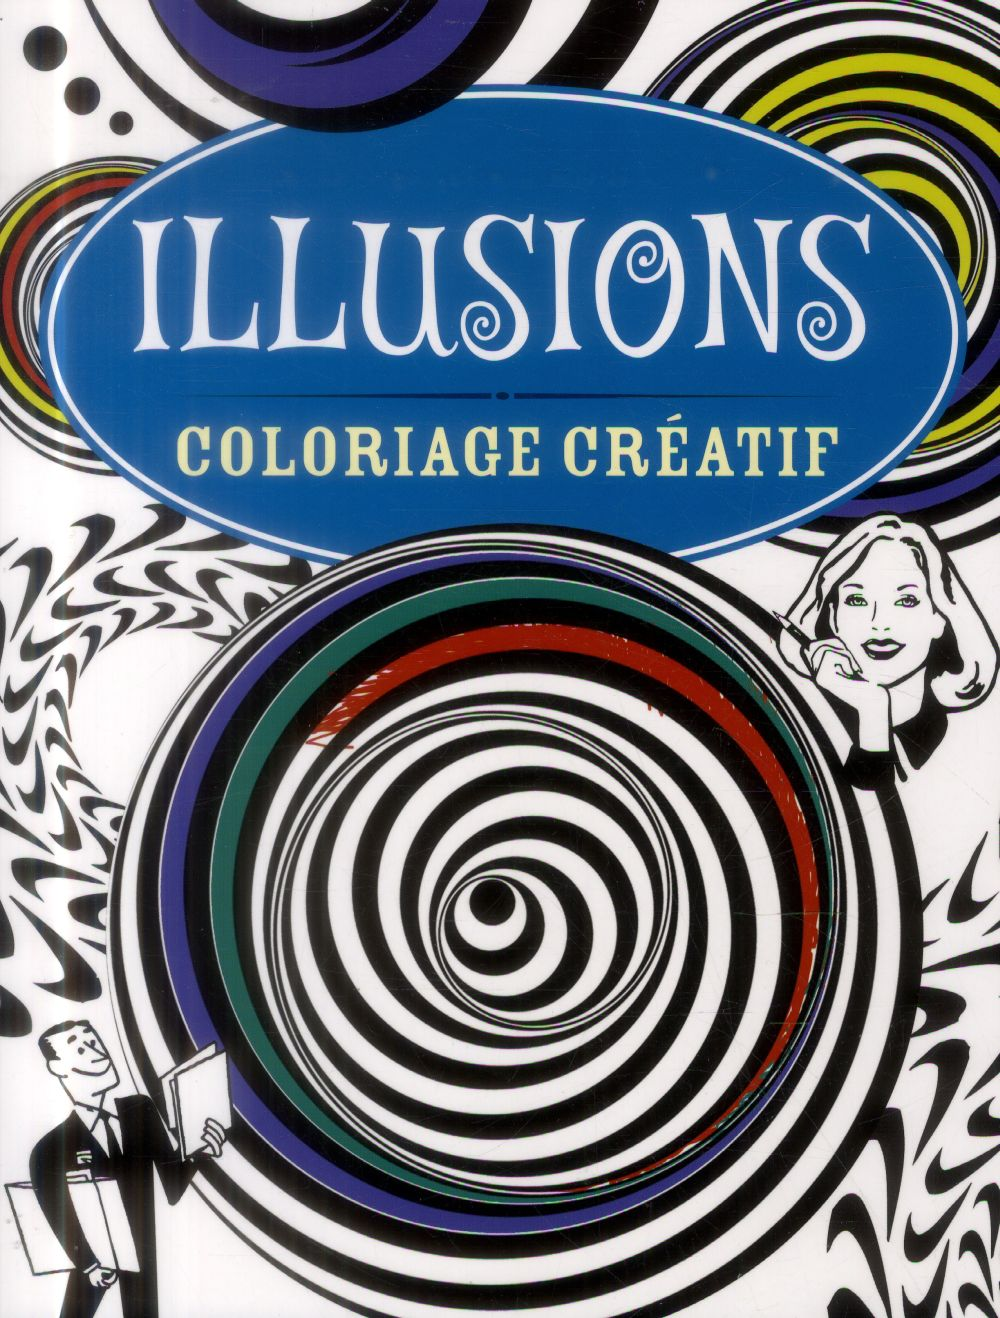 ILLUSIONS - COLORIAGE CREATIF